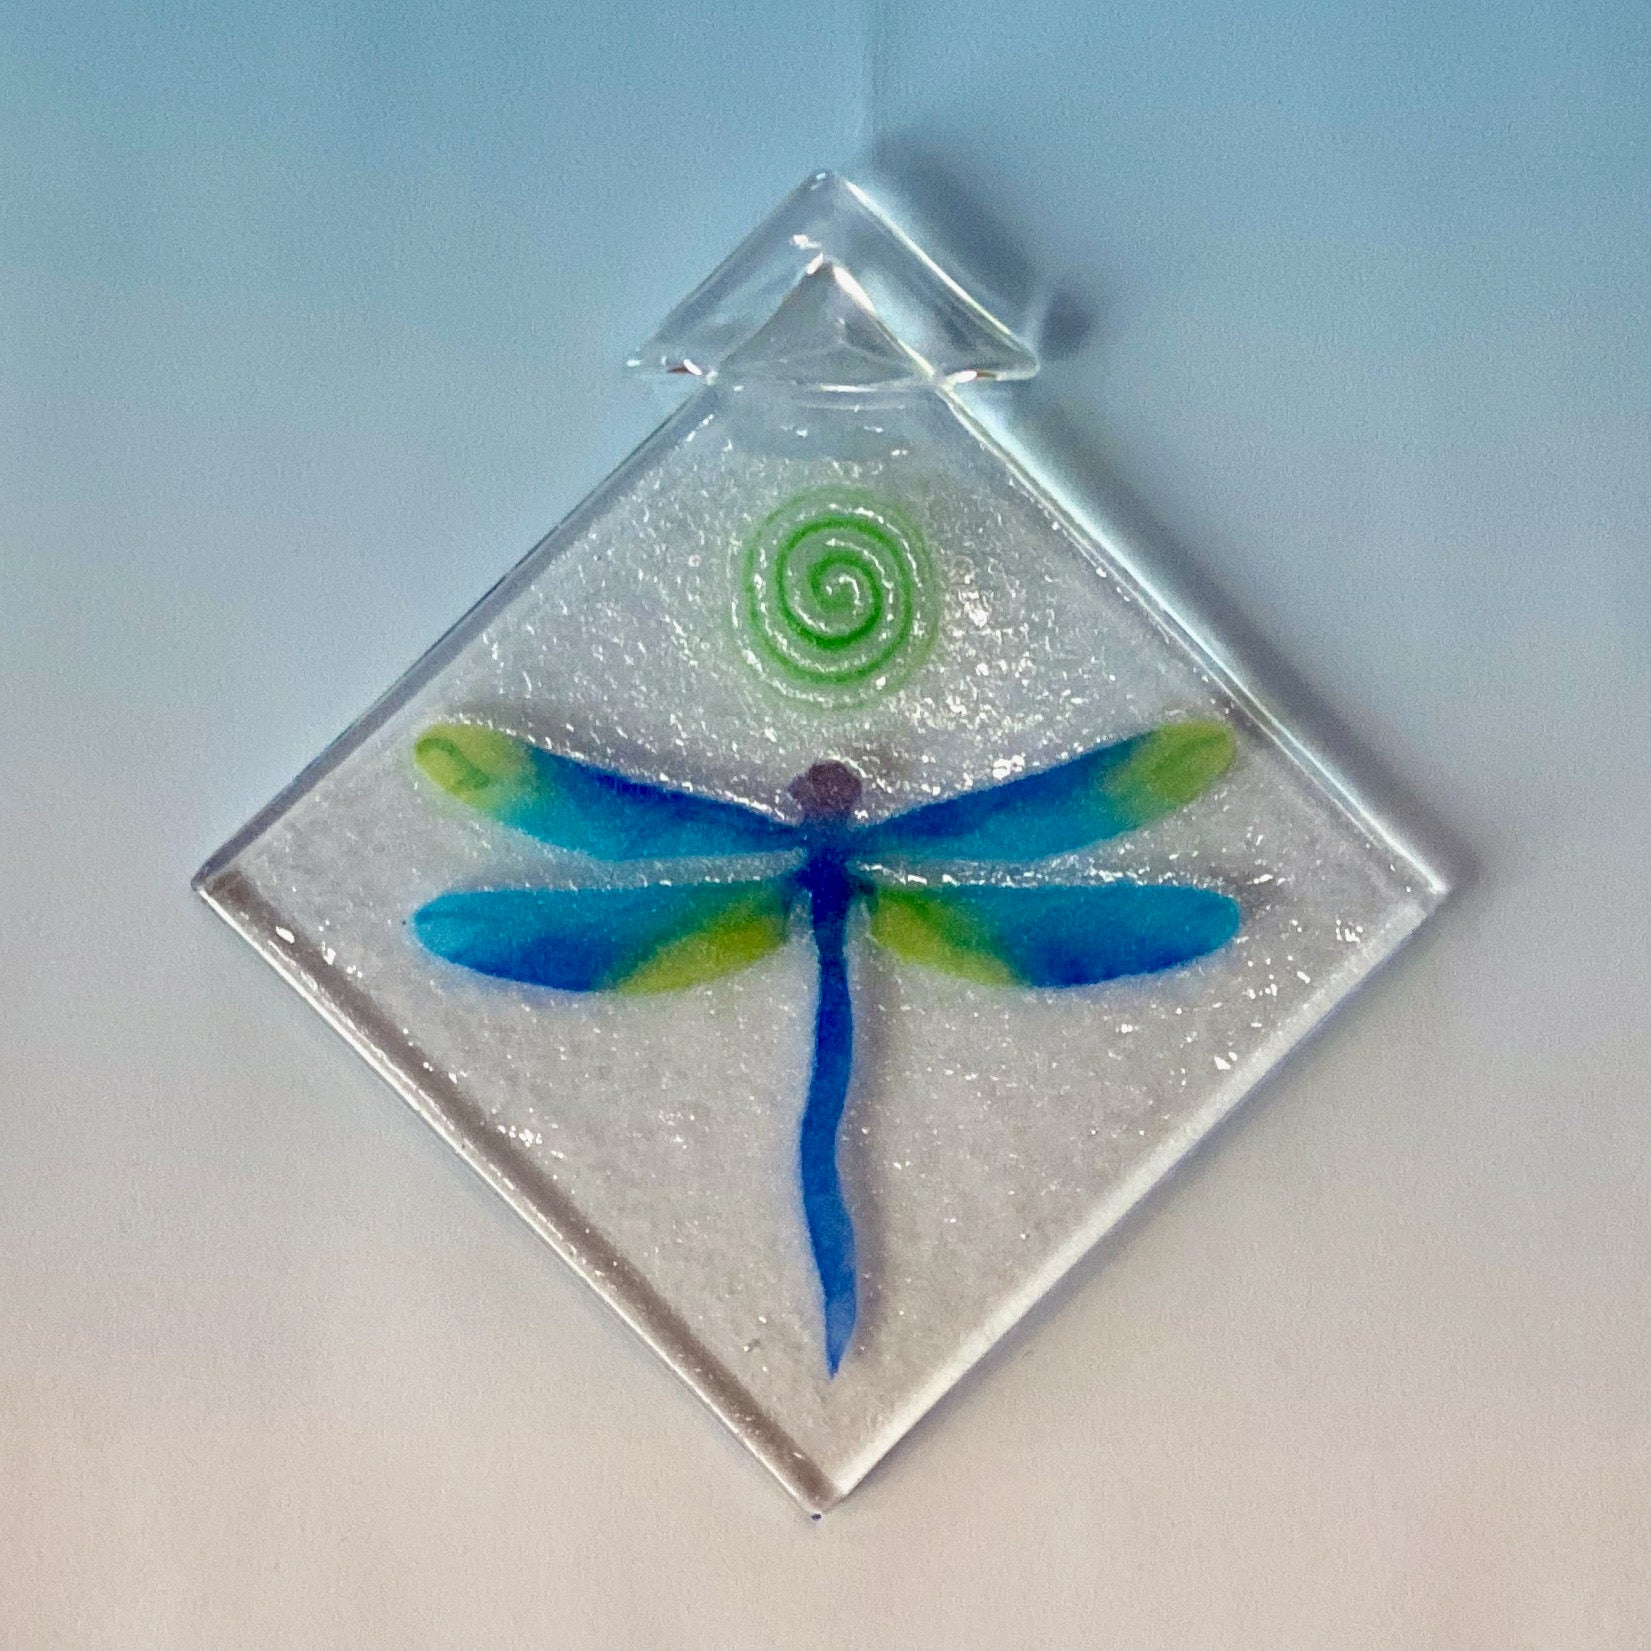 dragonfly, blue-green